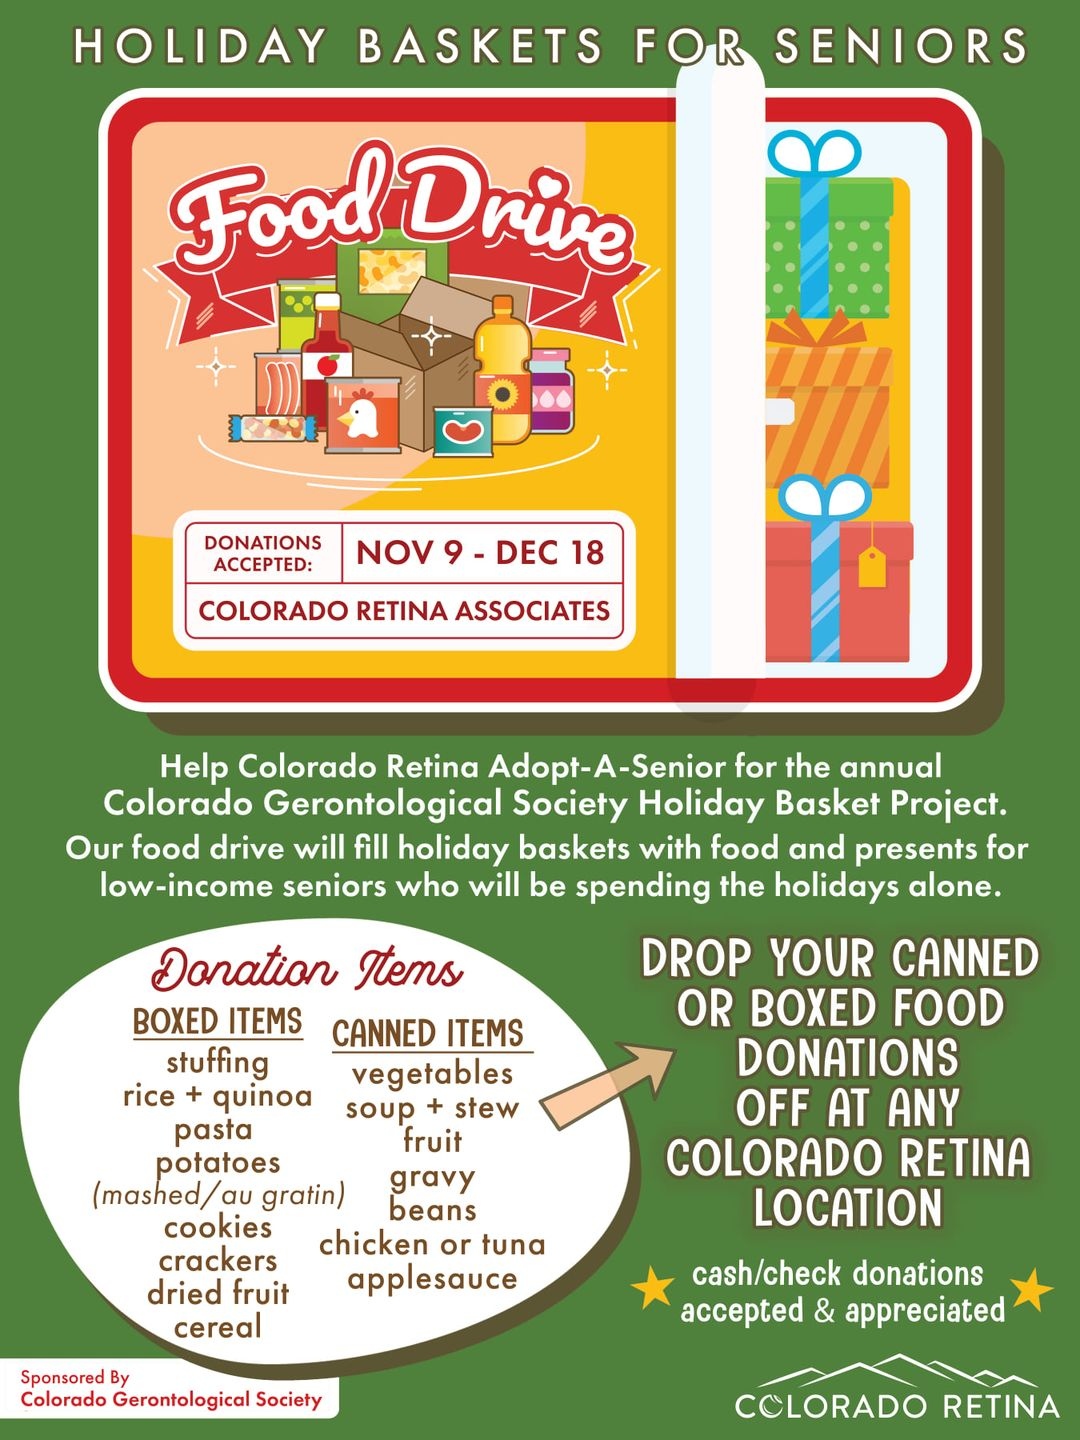 Image may contain: text that says 'HOLIDAY BASKETS FOR SENIORS Food Drive DONATIONS ACCEPTED: NOV9 DEC 18 COLORADO RETINA ASSOCIATES Help Colorado Retina for the annual Colorado Gerontological Society Holiday Basket Project. Our food drive will fill holiday baskets with food and presents for low-income seniors who will be spending the holidays alone. Donation Items BOXED ITEMS CANNED ITEMS stuffing vegetables rice quinoa stew pasta soup fruit potatoes (mashed au gratin) gravy cookies beans chicken or tuna crackers dried fruit applesauce cereal DROP YOUR CANNED OR BOXED FOOD DONATIONS OFF AT ANY COLORADO RETINA LOCATION Sponsored Colorado Gerontological Society cash/check donations accepted& appreciated COLORADO RETINA'